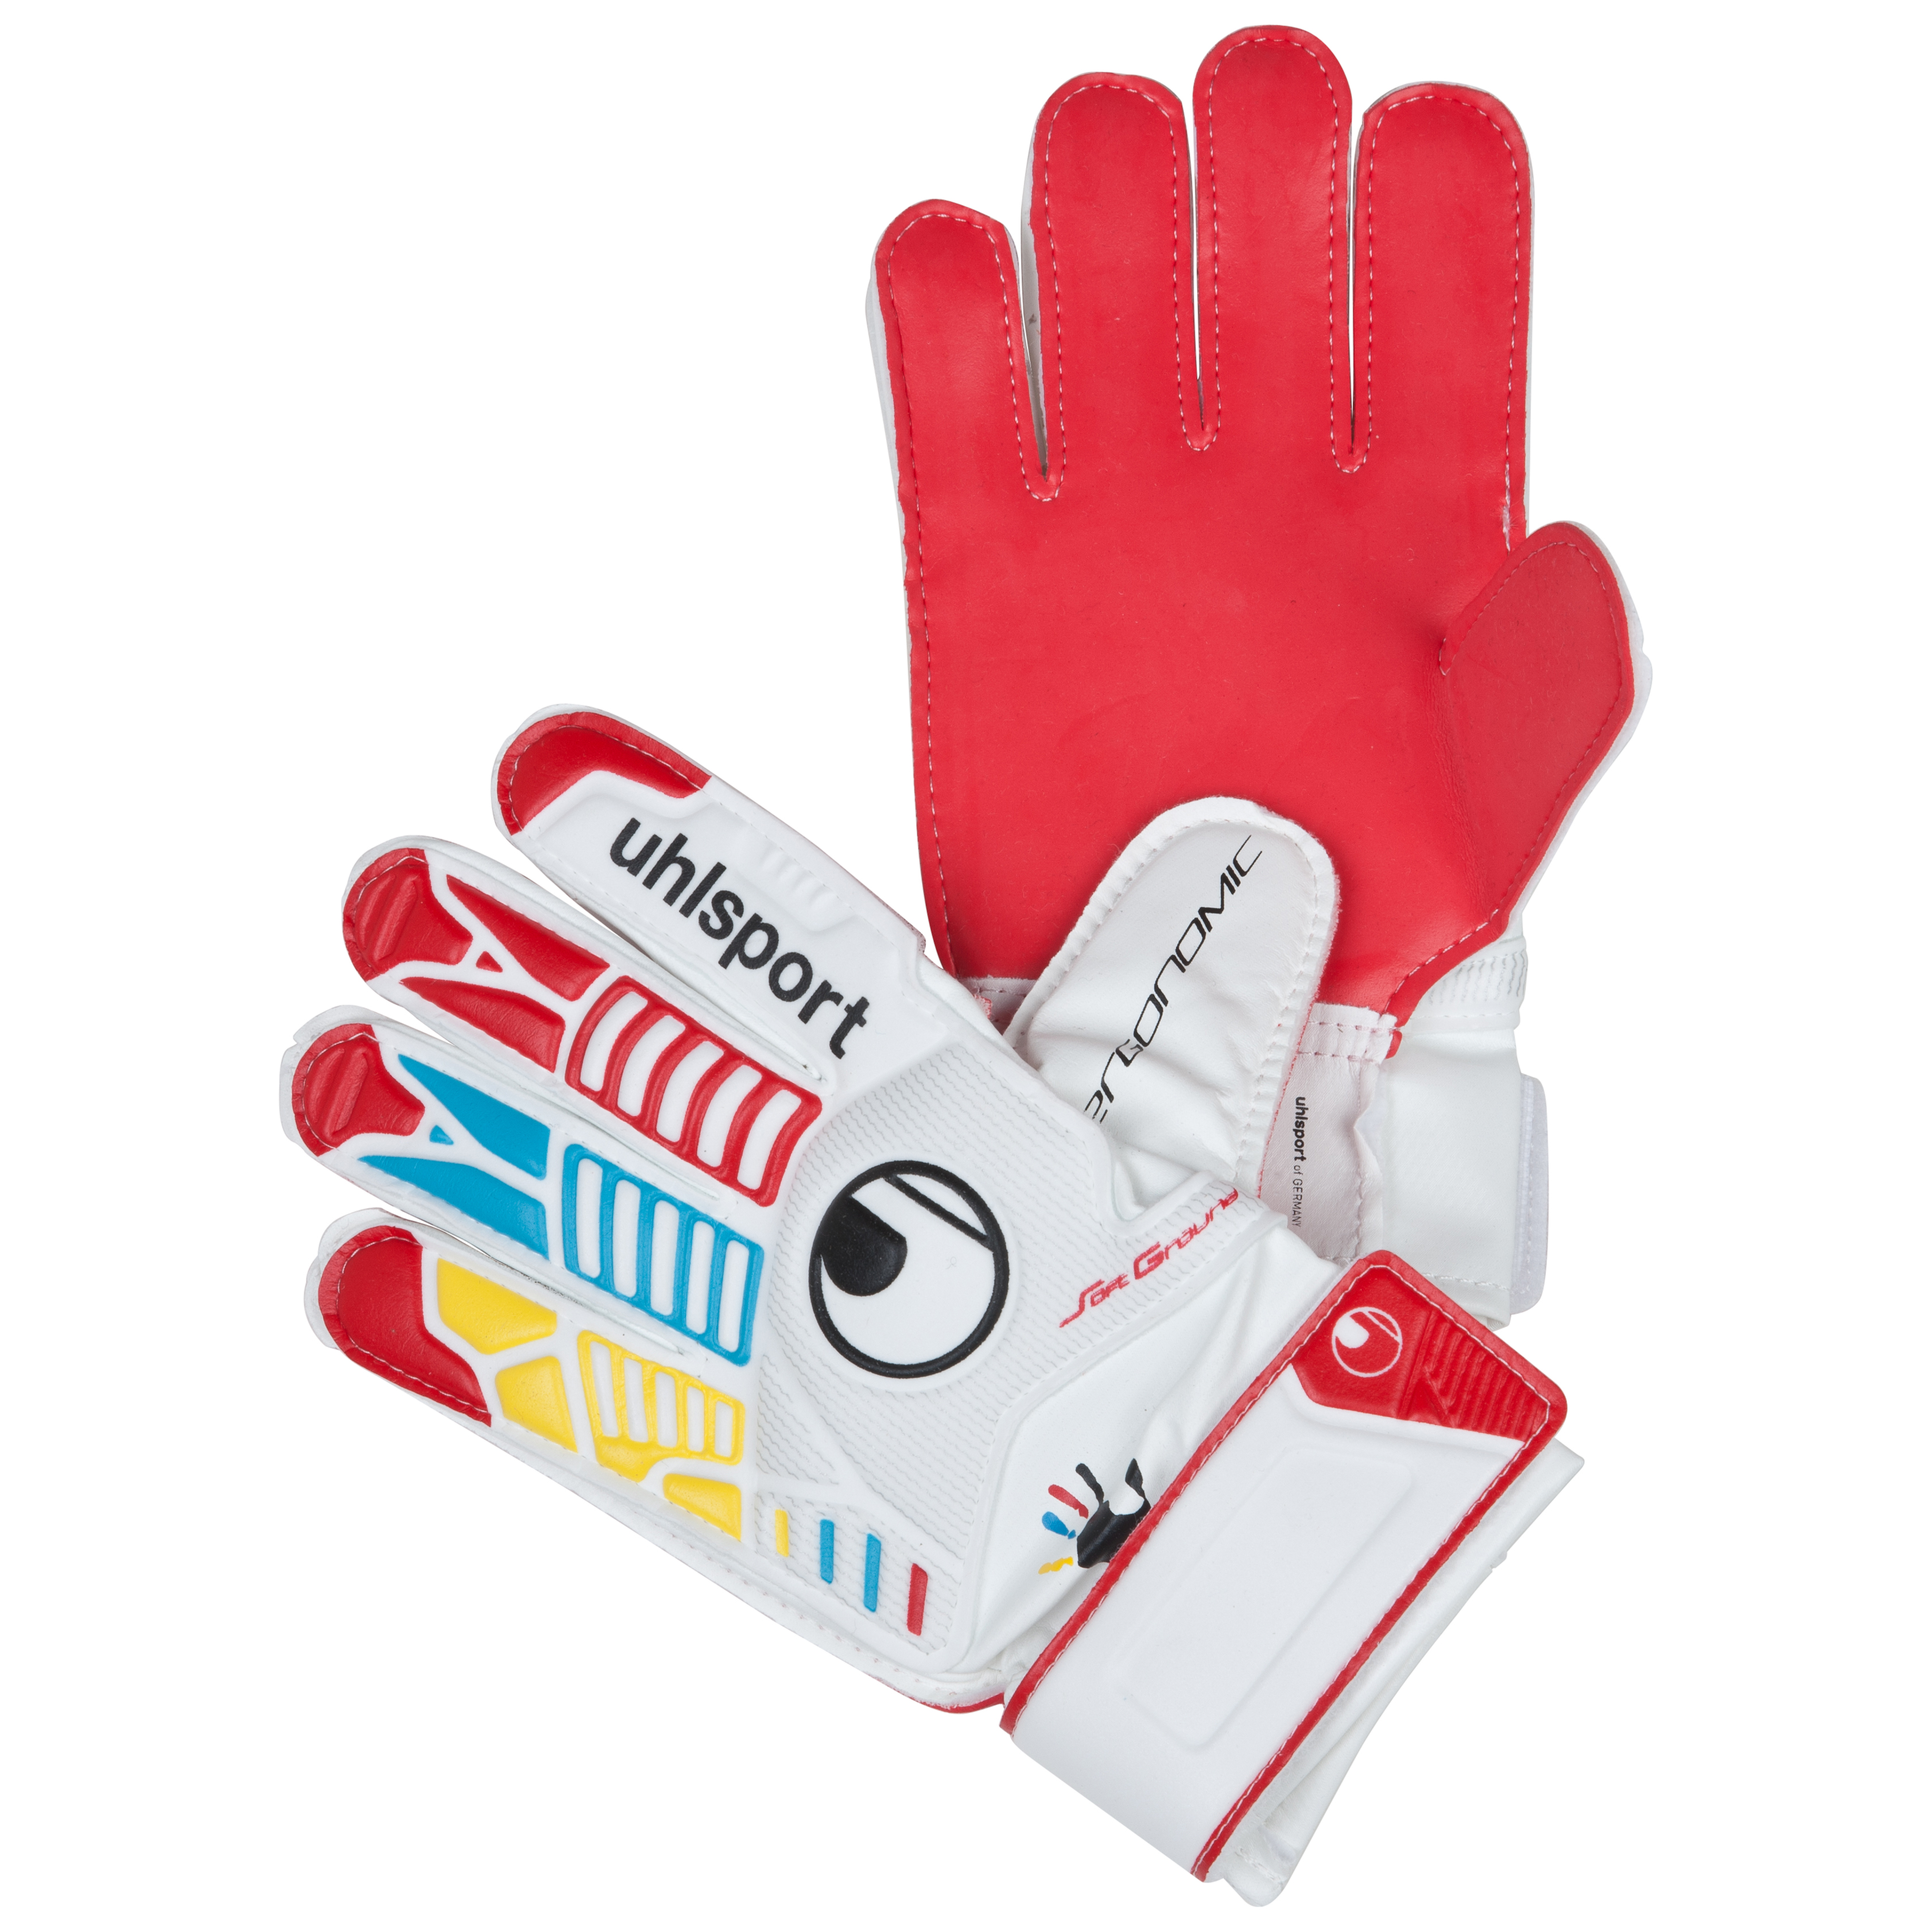 Uhlsport Ergonomic Starter Soft 'Wir Tun Was' Goalkeeper Gloves - White/Red/Yellow/Cyan - Kids